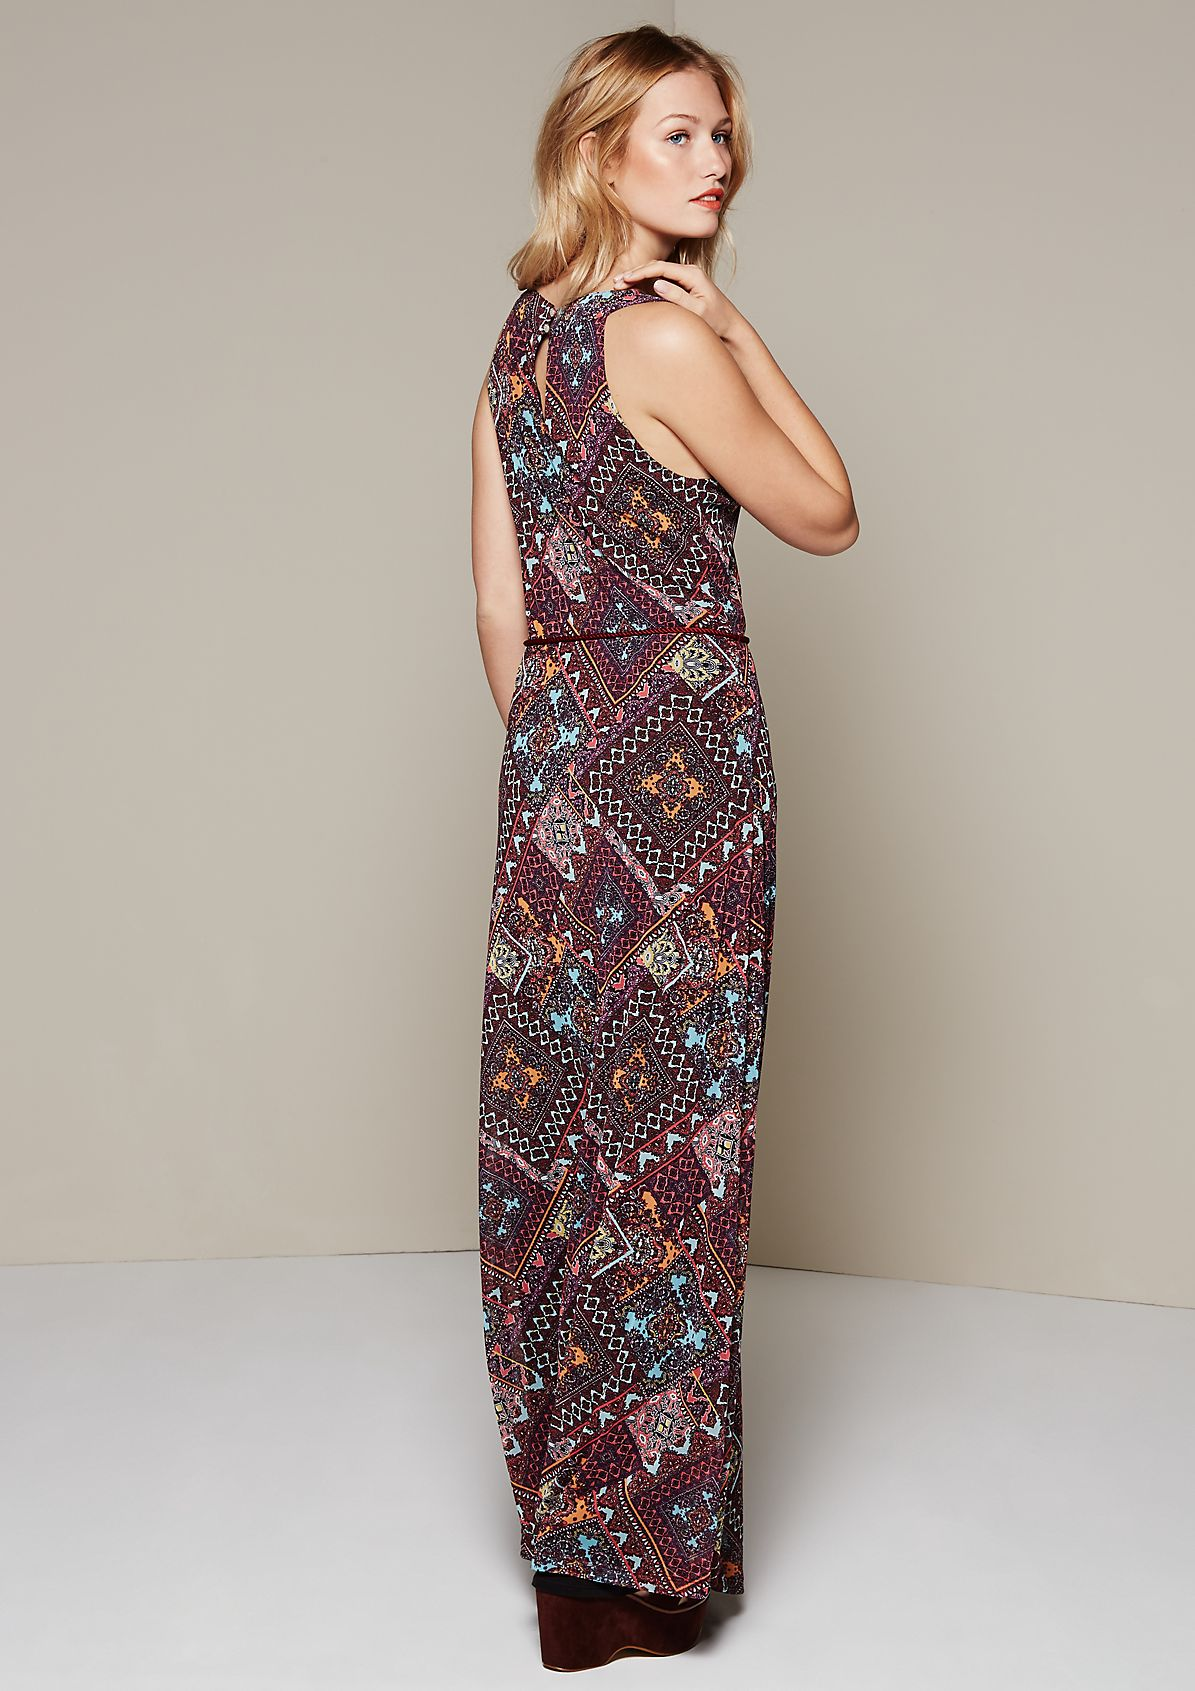 Lightweight mesh dress with an artistic all-over pattern from s.Oliver